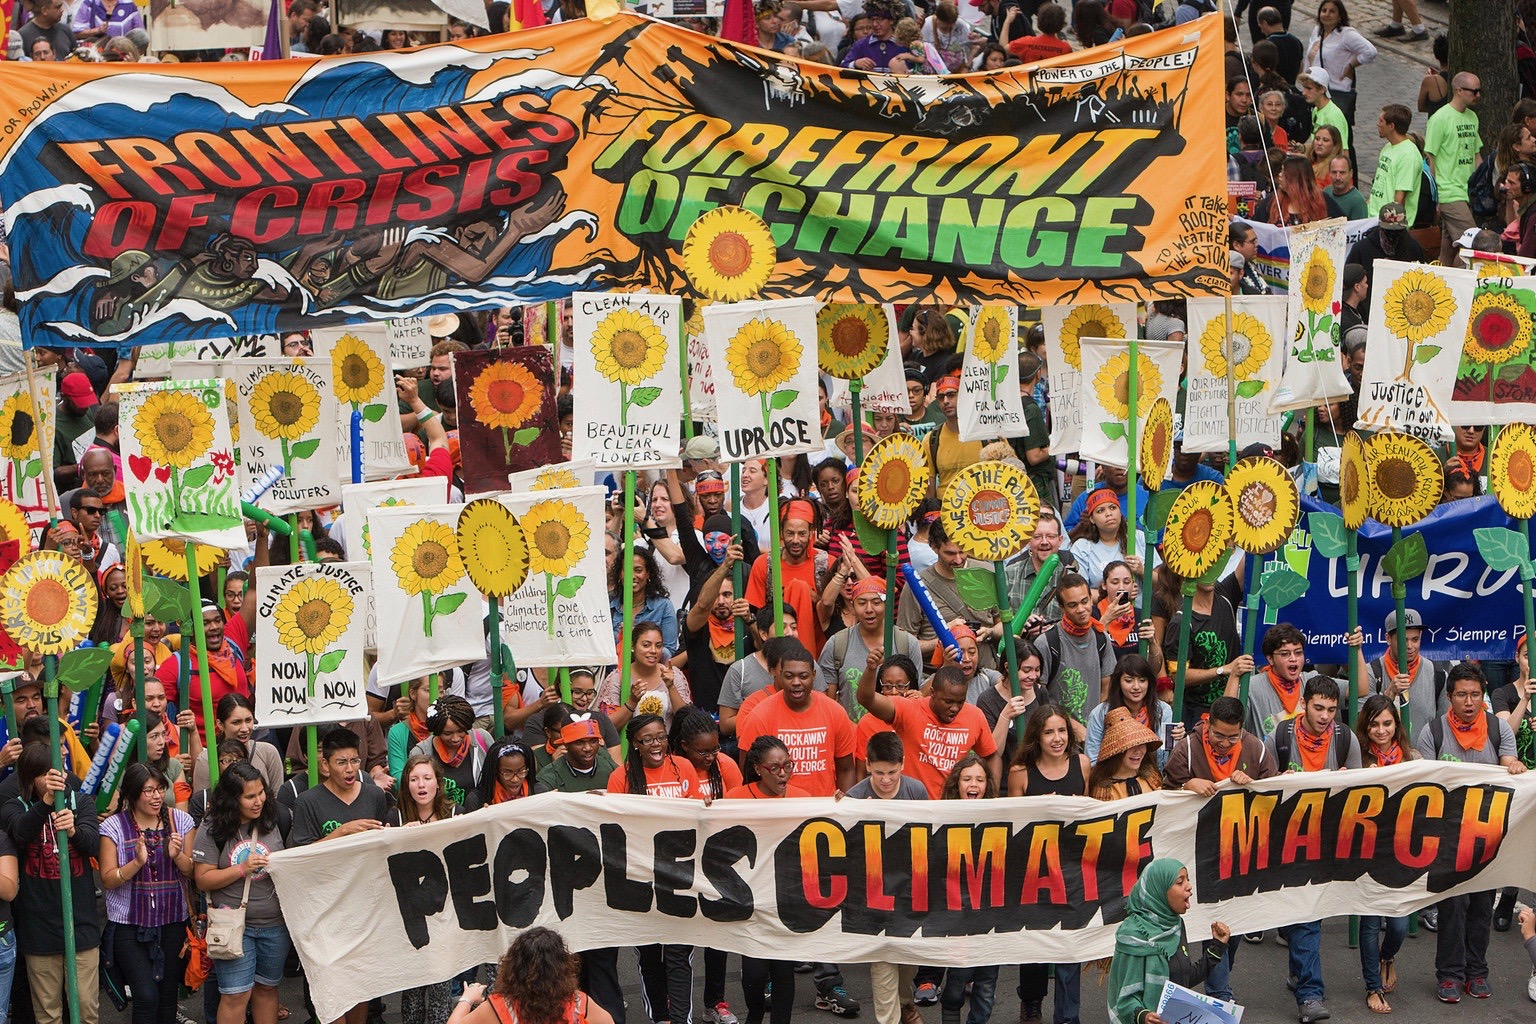 It's estimated that more than 300,000 marched at the People's Climate March on September 21, 2014 in New York City. Photo: Robert van Waarden/flickr